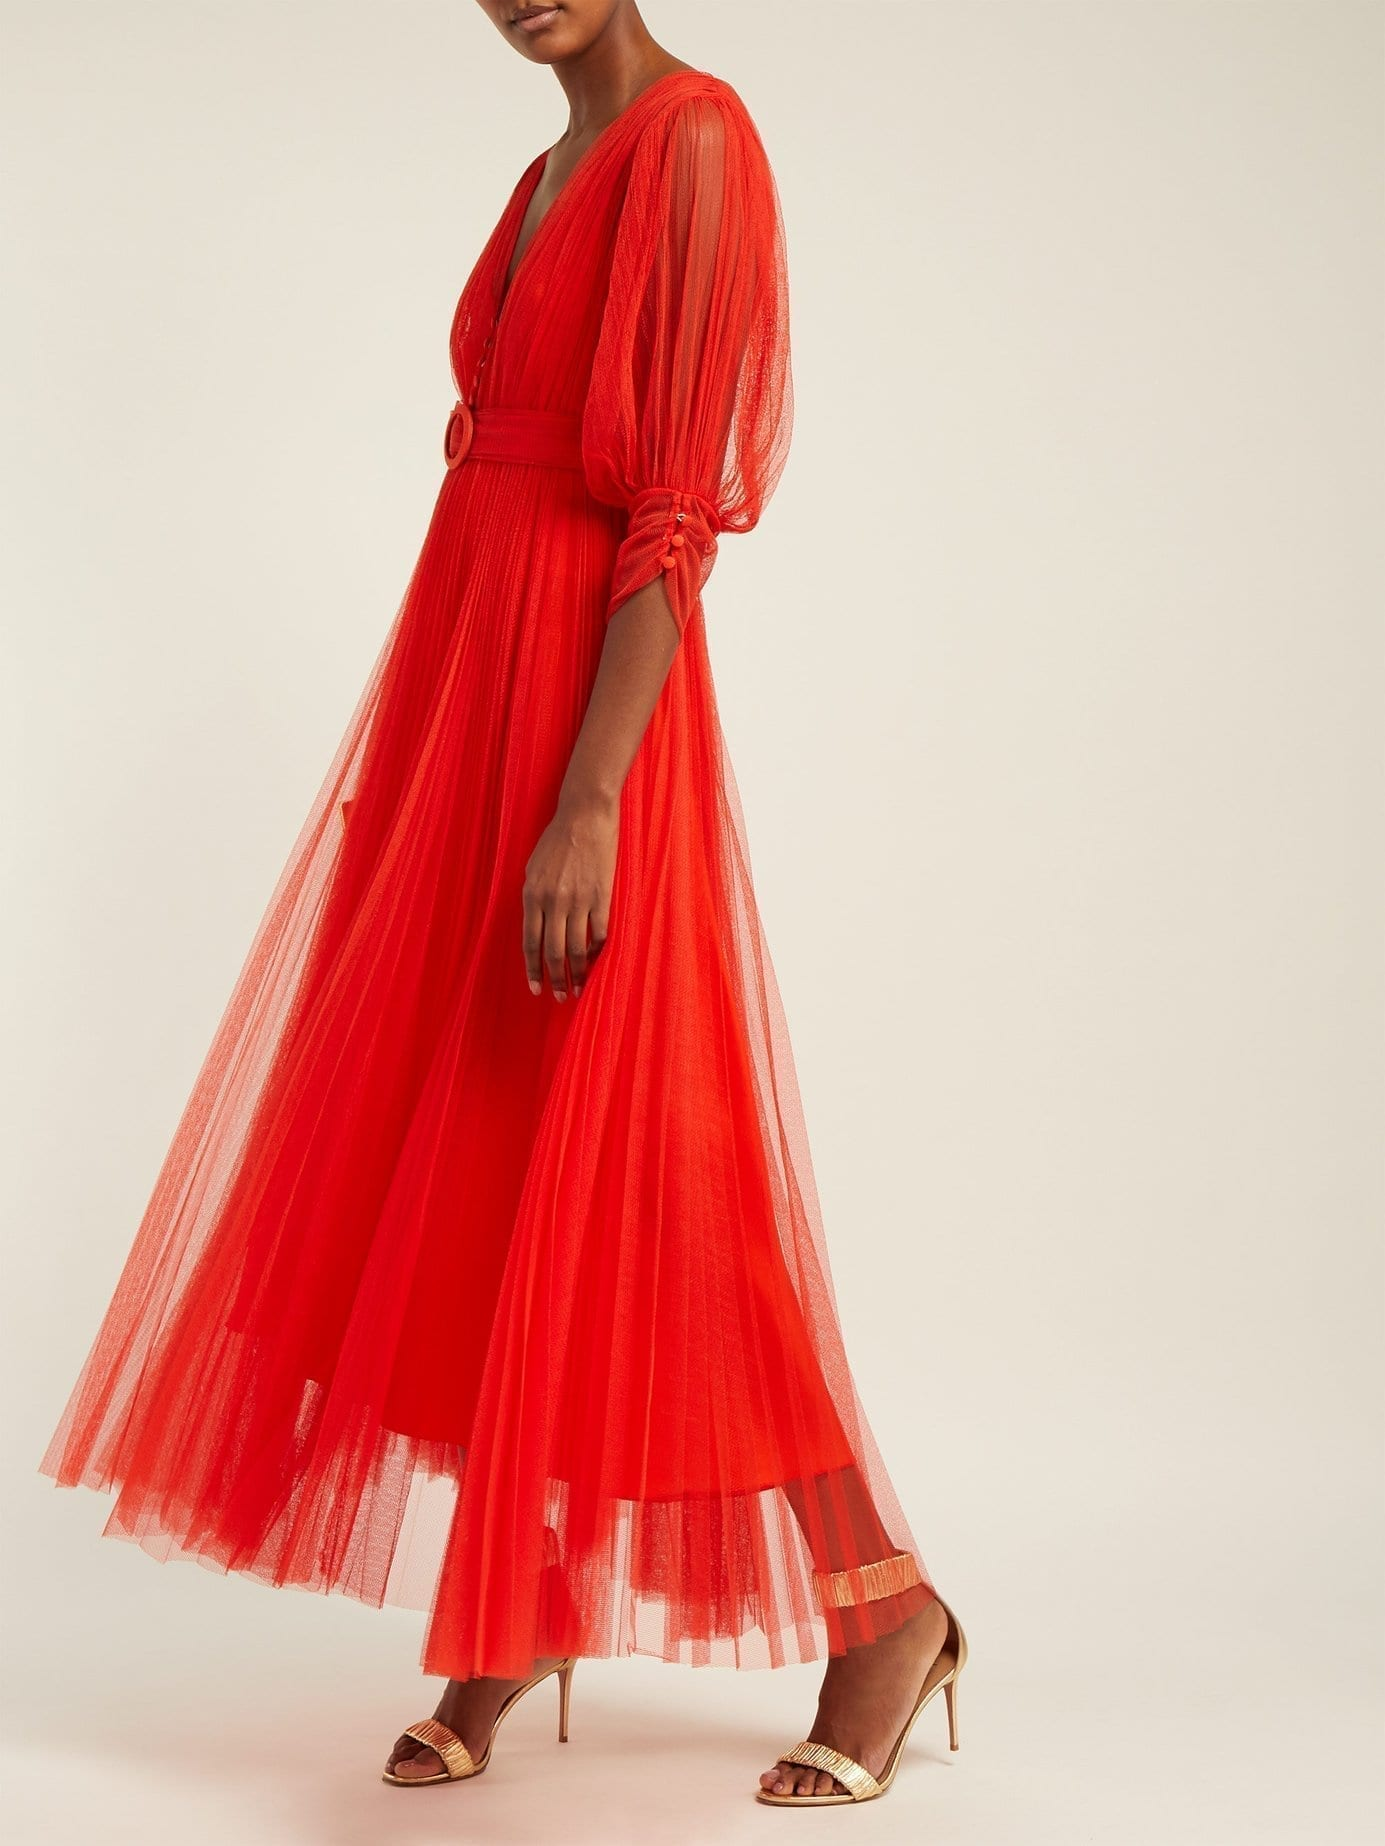 MARIA LUCIA HOHAN Aminah Belted Tulle Red Dress